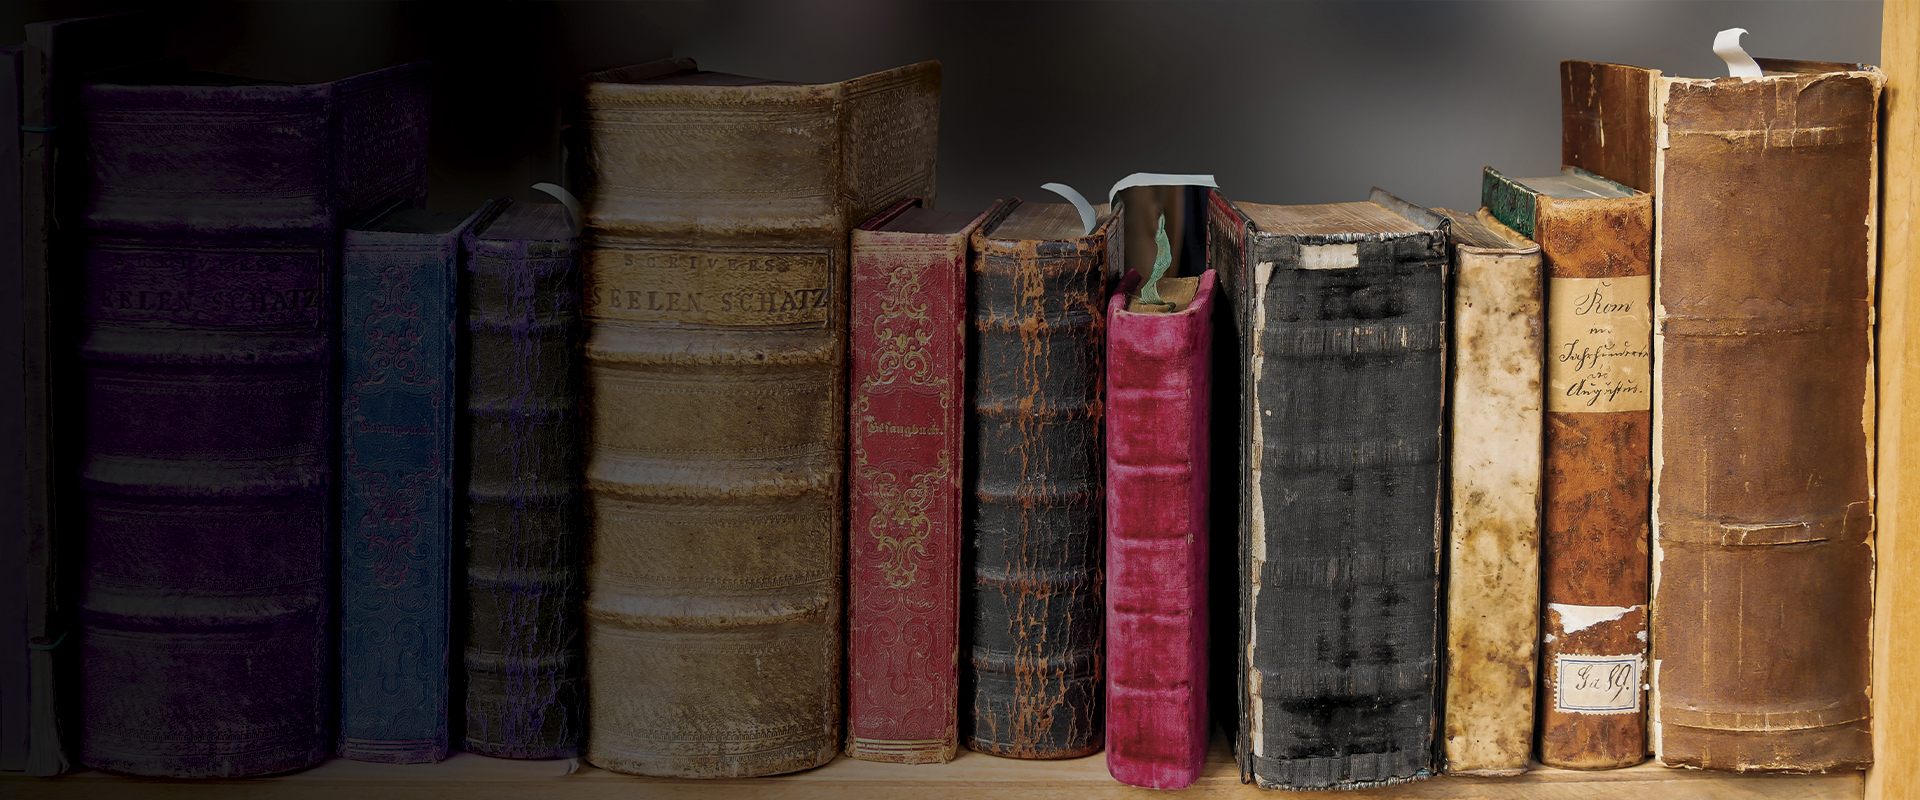 Stock photograph of books